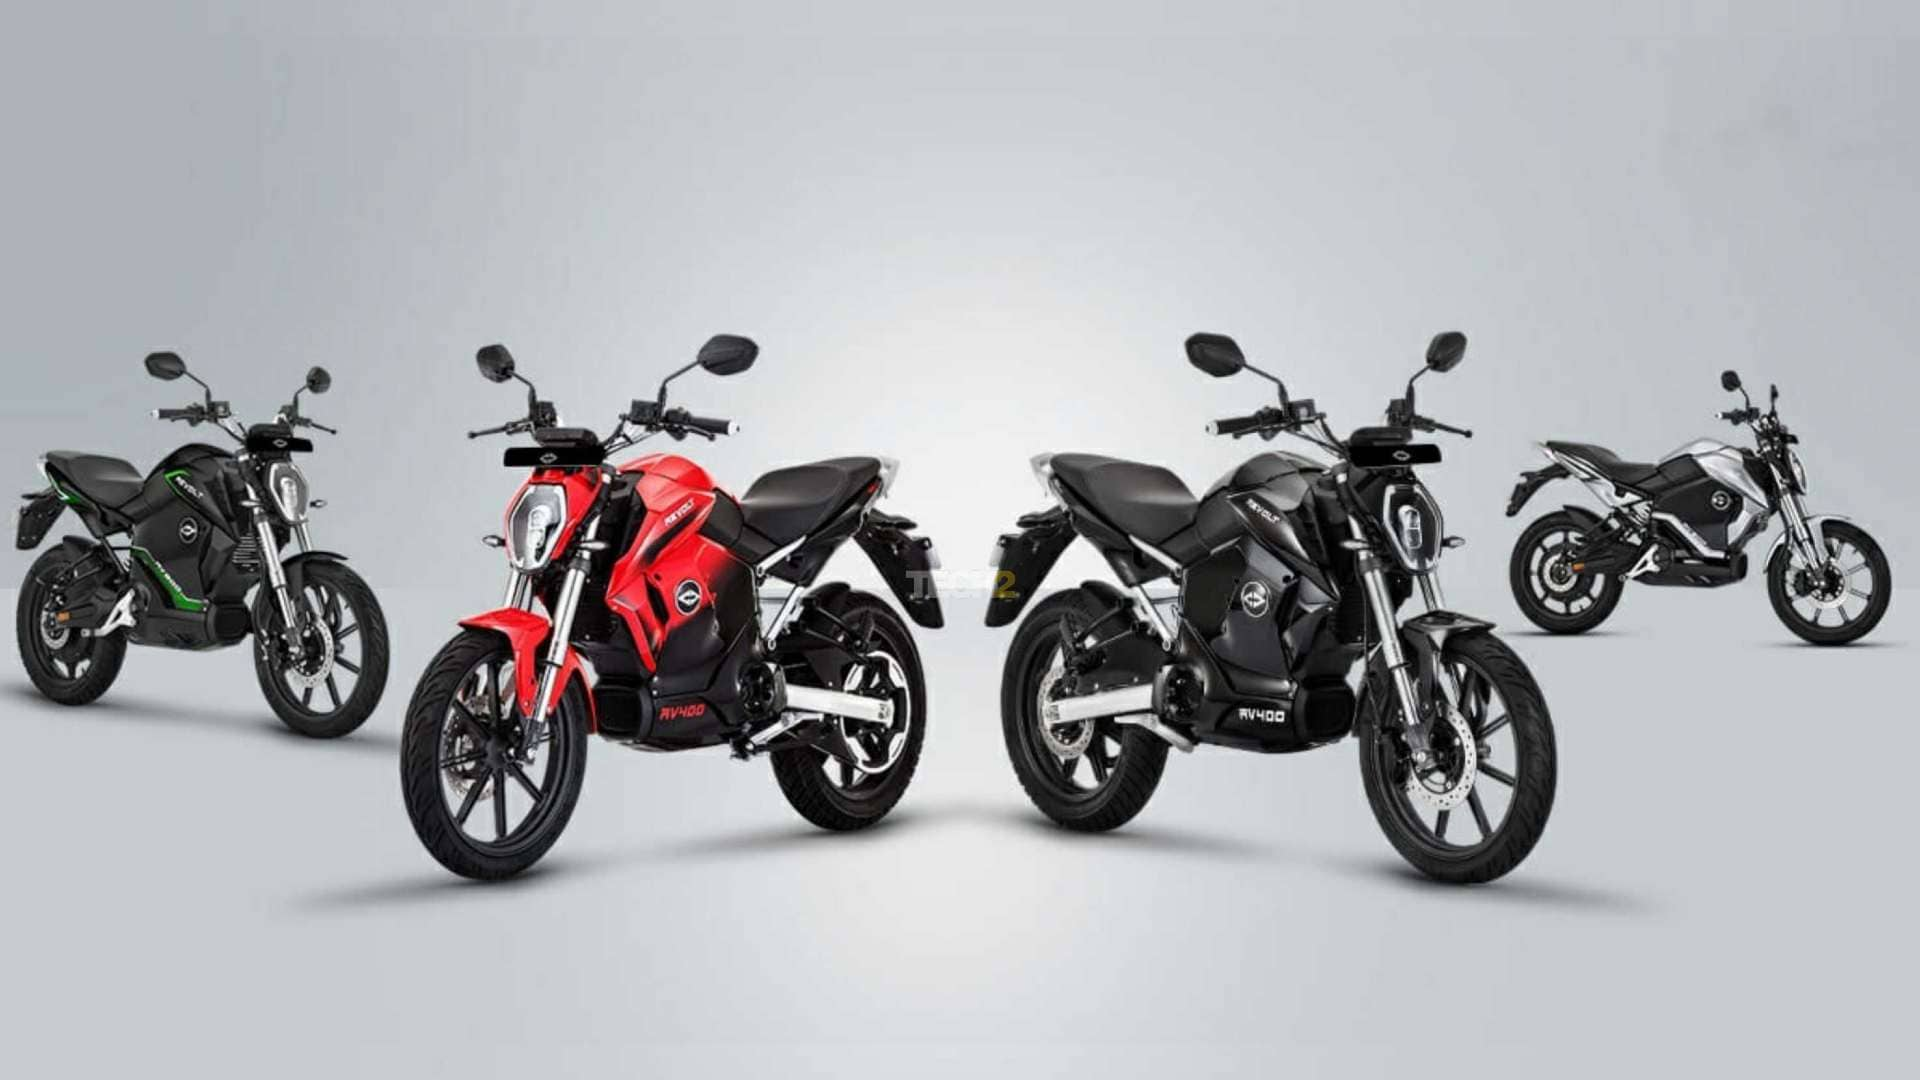 Revolt RV400, RV300 Electric Motorcycle Charges Temporarily Closed in India as Demand Rises - Technology News, Firstpost